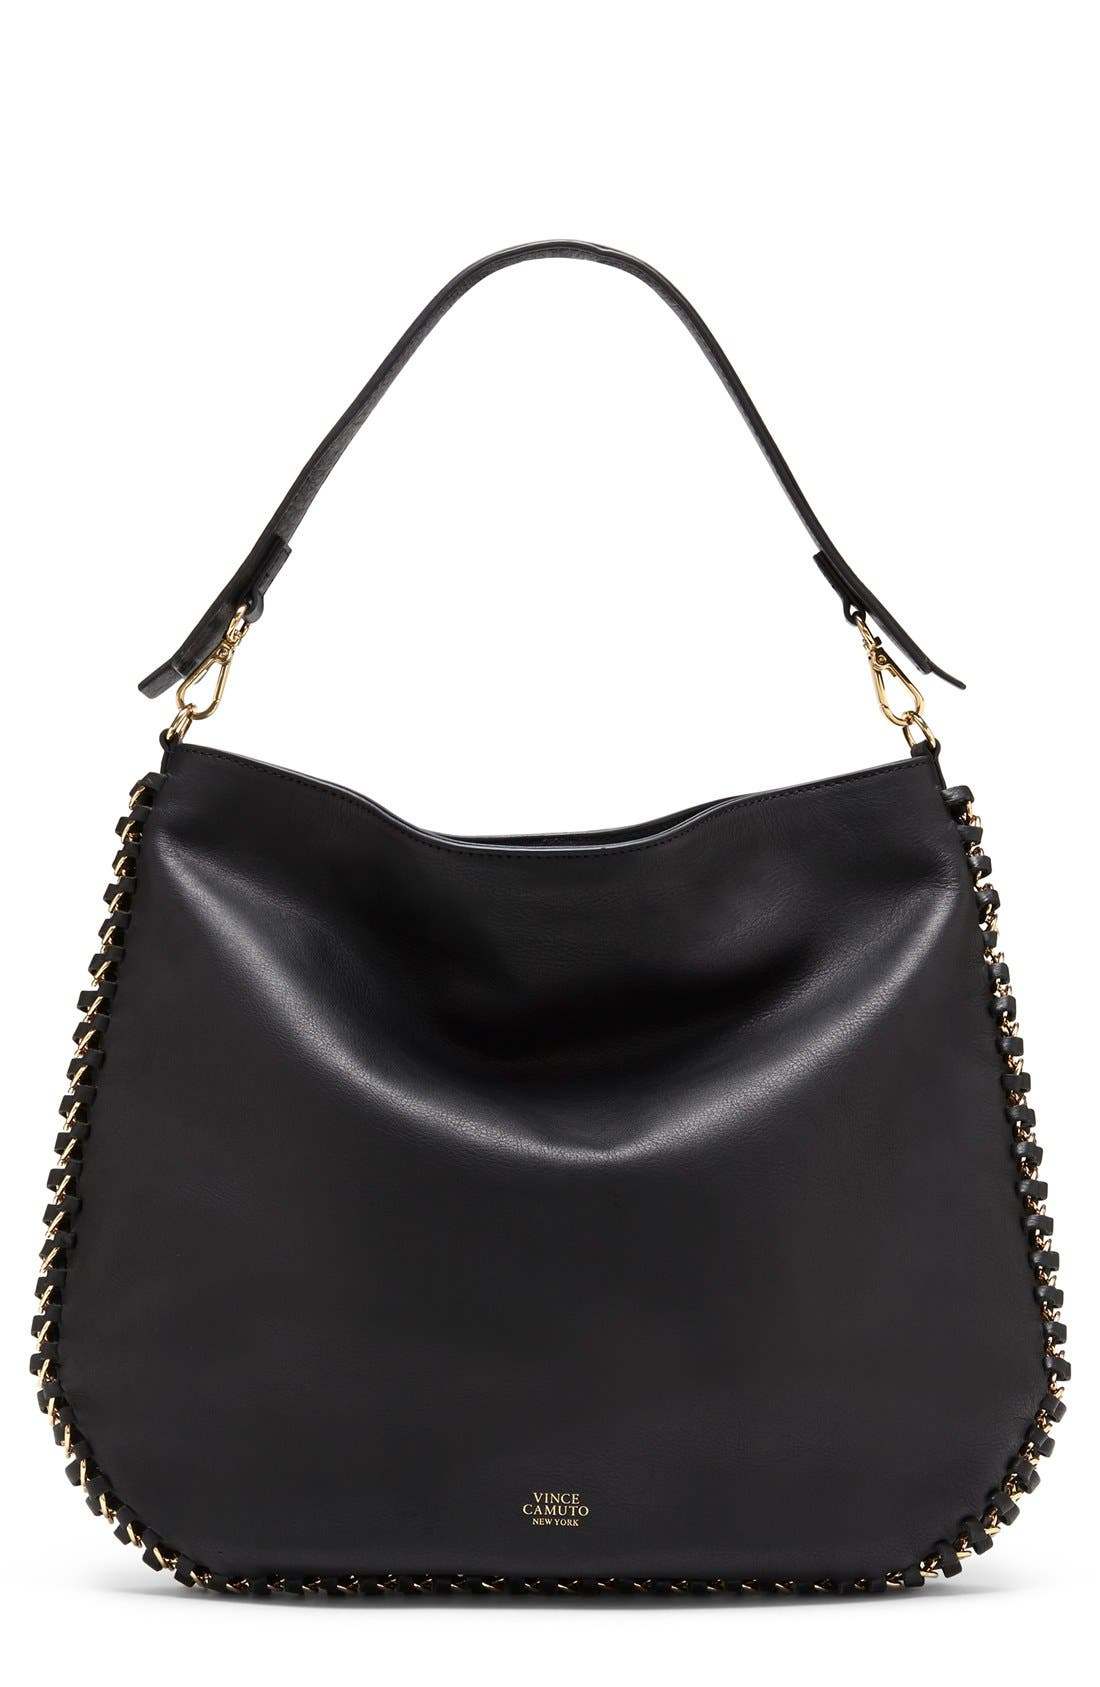 Alternate Image 1 Selected - Vince Camuto 'Inez' Hobo Bag